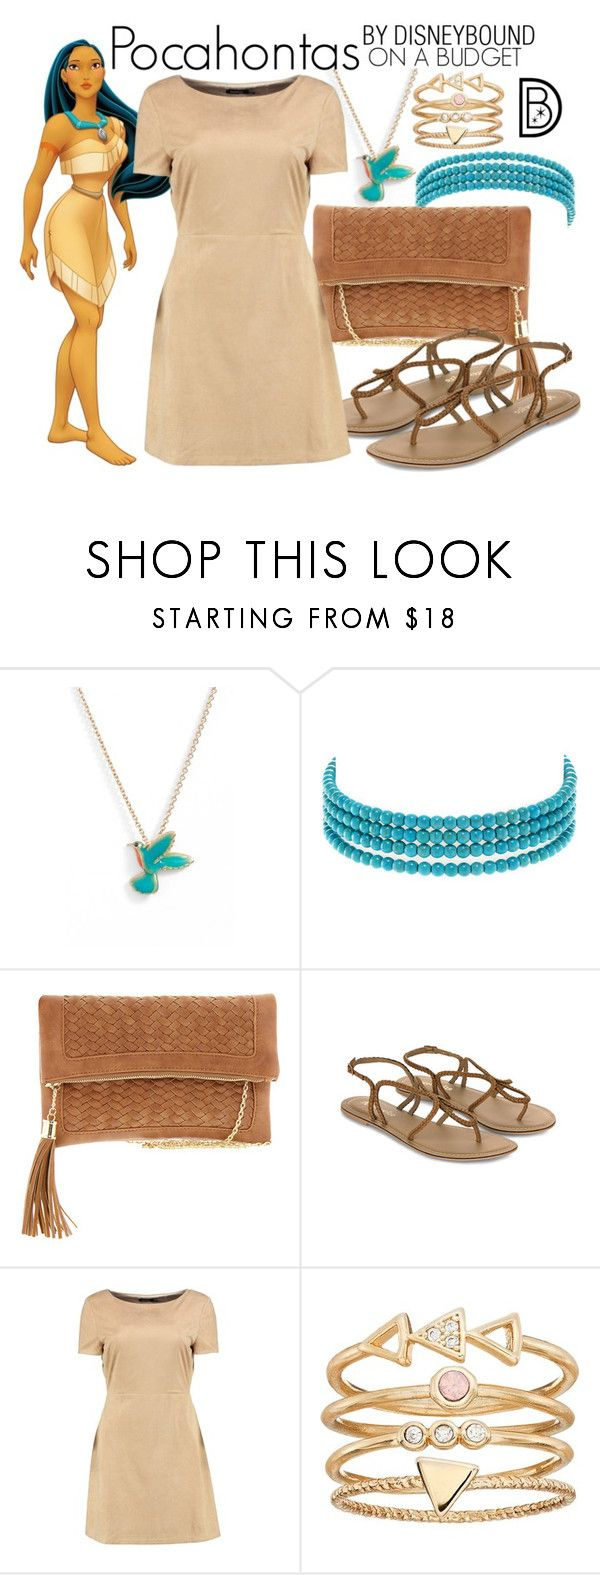 """""""Pocahontas"""" by leslieakay ❤ liked on Polyvore featuring Kate Spade, Kenneth Jay Lane, Disney, Urban Expressions, Accessorize, Boohoo, LC Lauren Conrad, disney, disneybound and disneycharacter"""